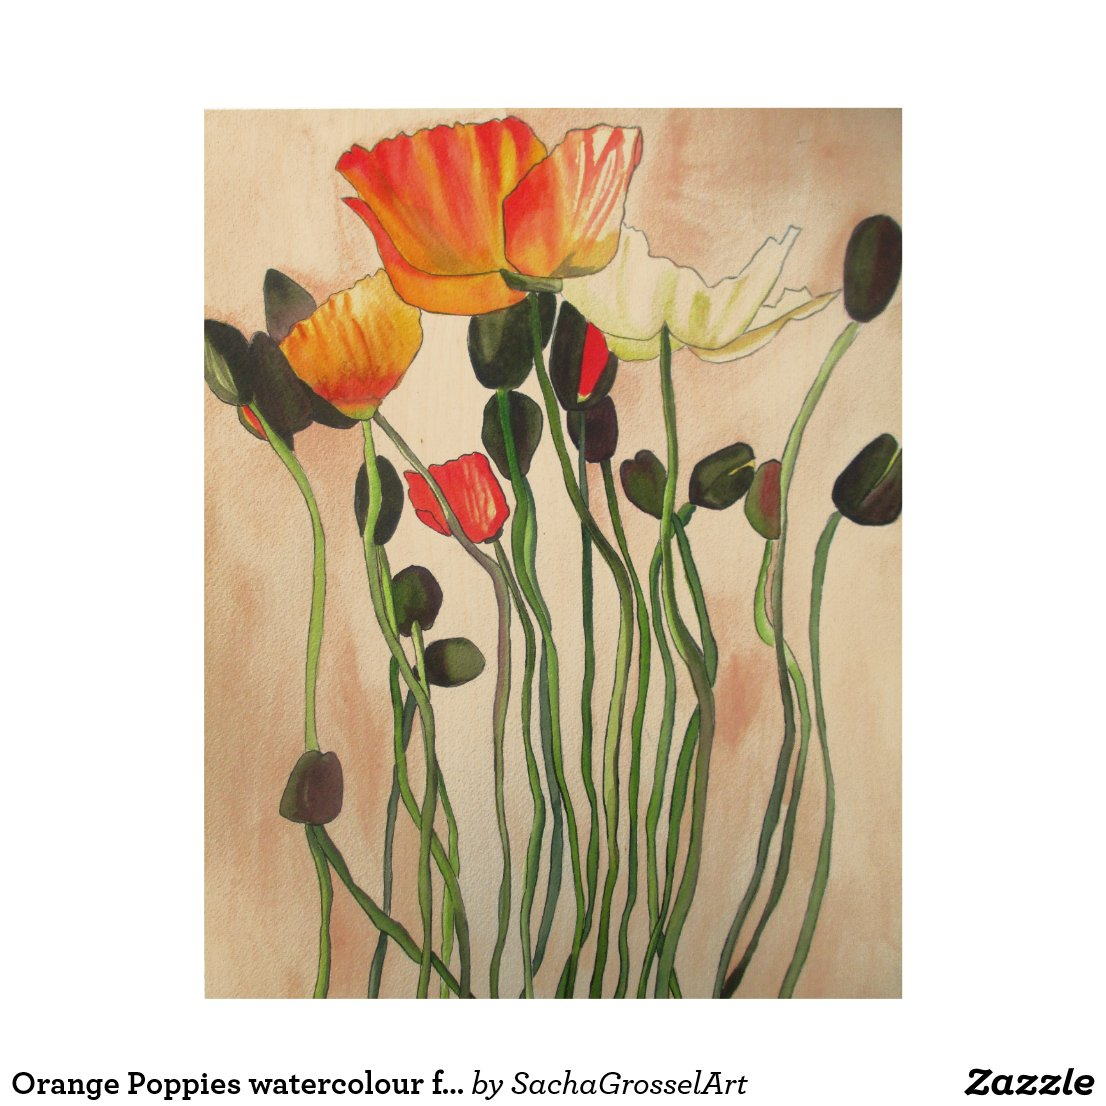 Orange Poppies watercolour flower art